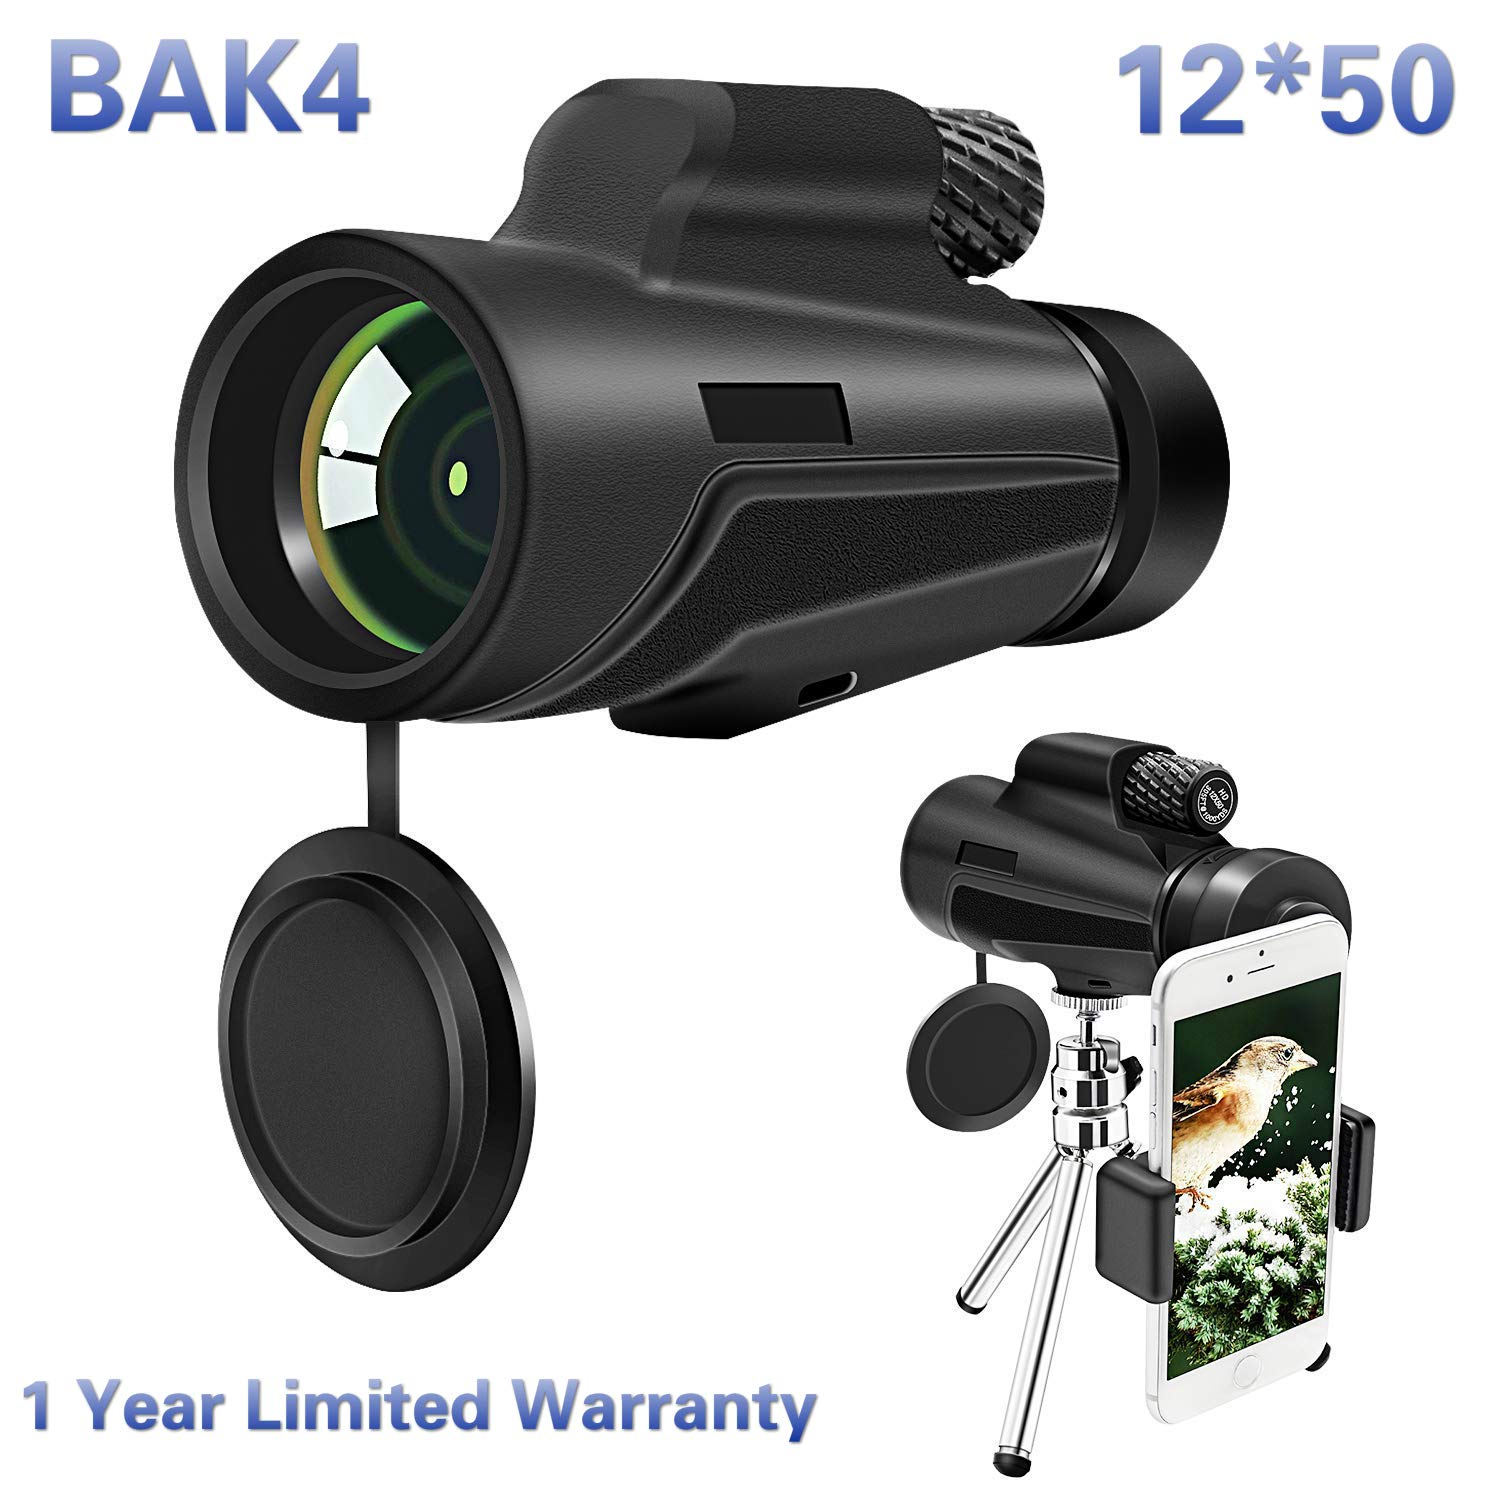 Monocular Telescope, 12x50 High Power BAK4 Prism Telescope, Portable Waterproof Spotting Scope with Quick Smartphone Holder Tripod and Neck Strap for Outdoor Bird Watching Hunting Hiking